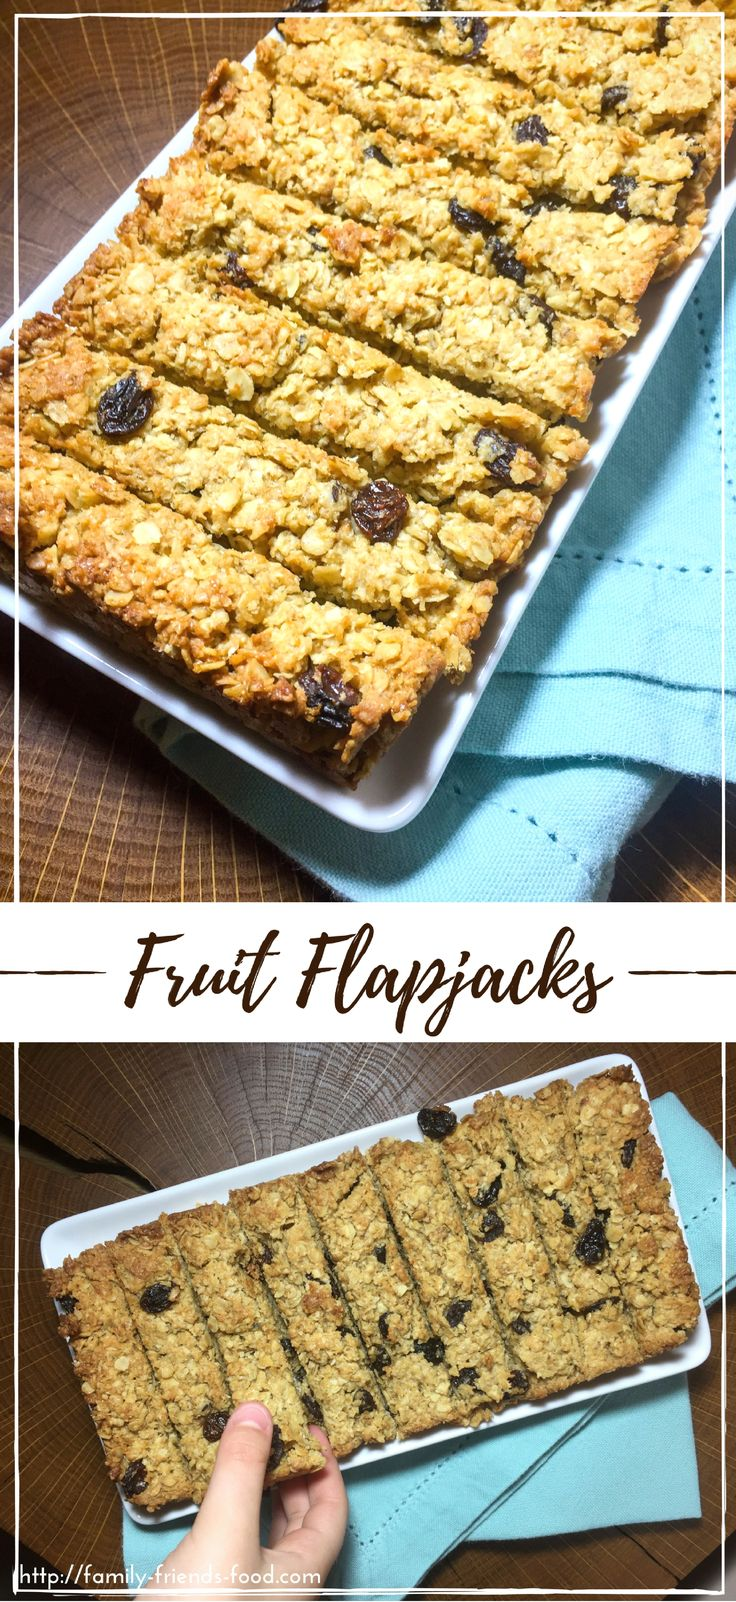 Delicious, chewy, oaty flapjacks studded with juicy dried fruits and richly flavoured with syrup and coconut. Dairy free, parve, vegan, and utterly yummy!